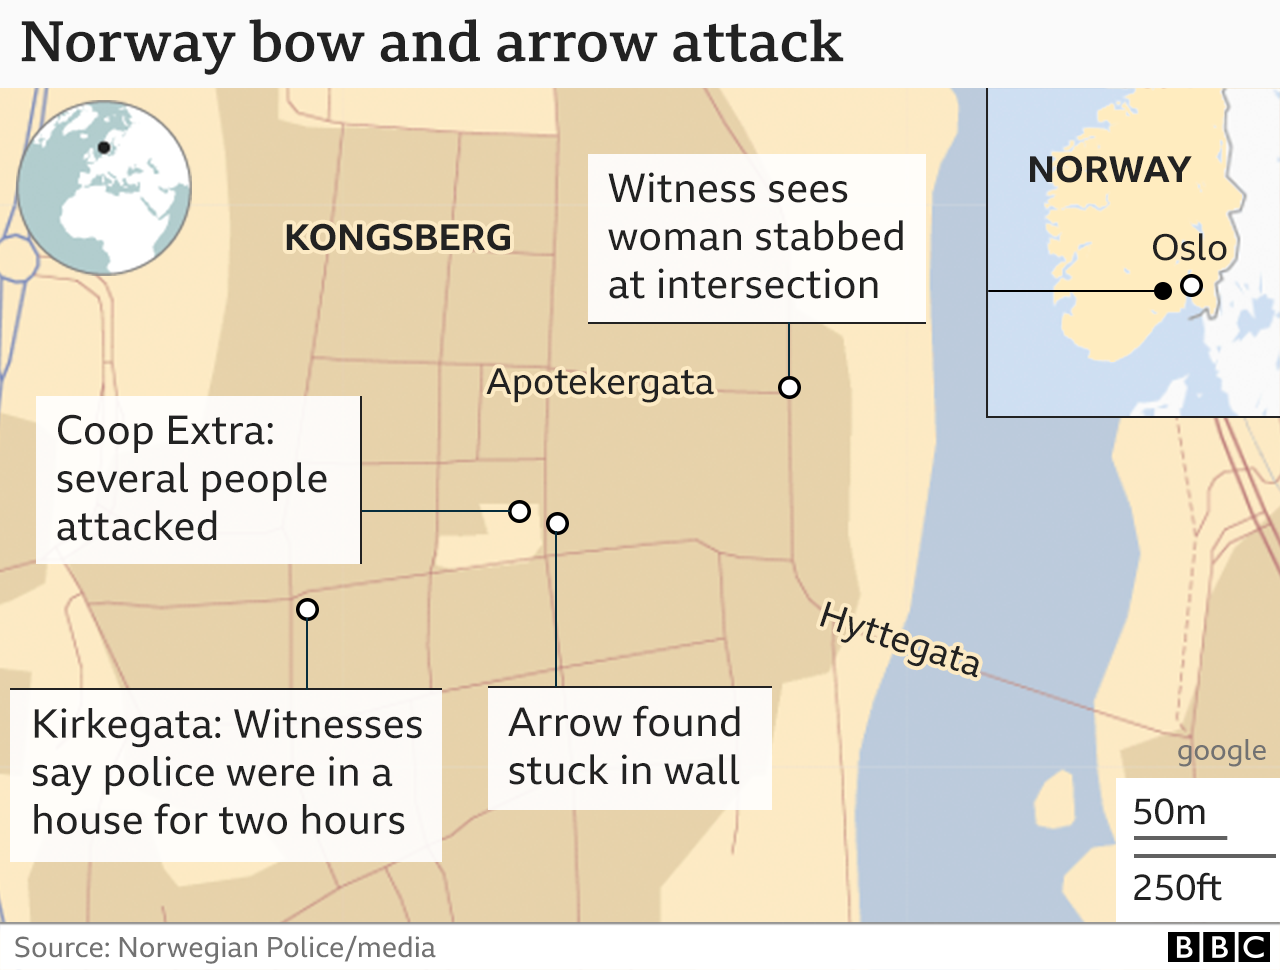 A map showing where the attacks happened in Kongsberg